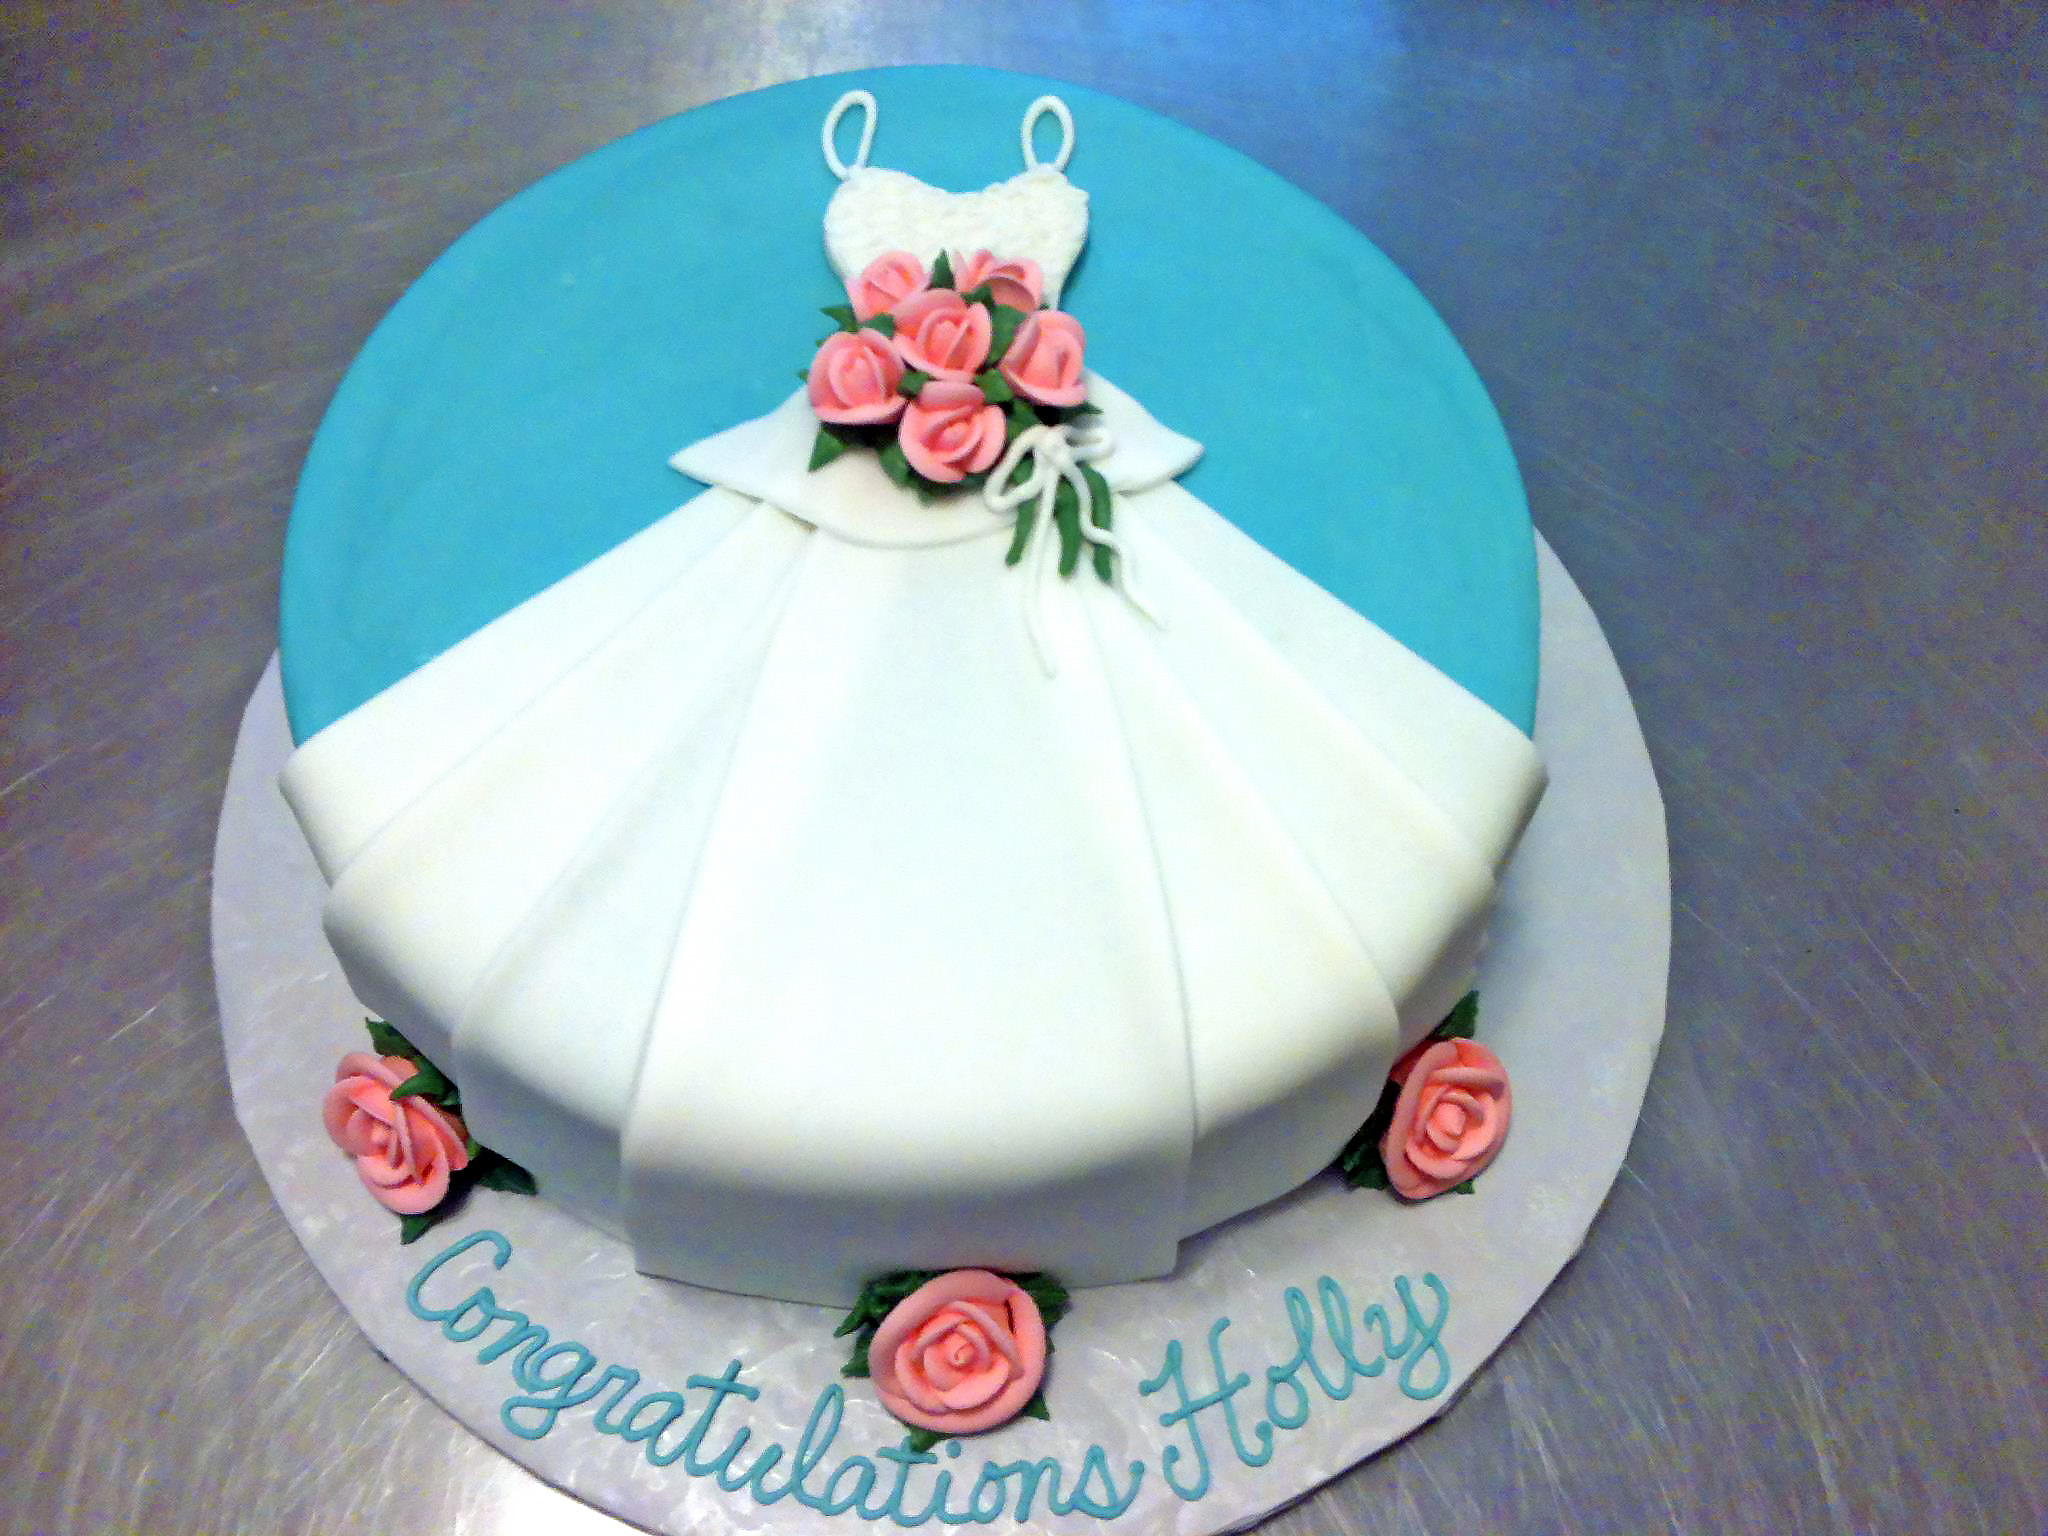 bridal-shower-cake-dress-1157